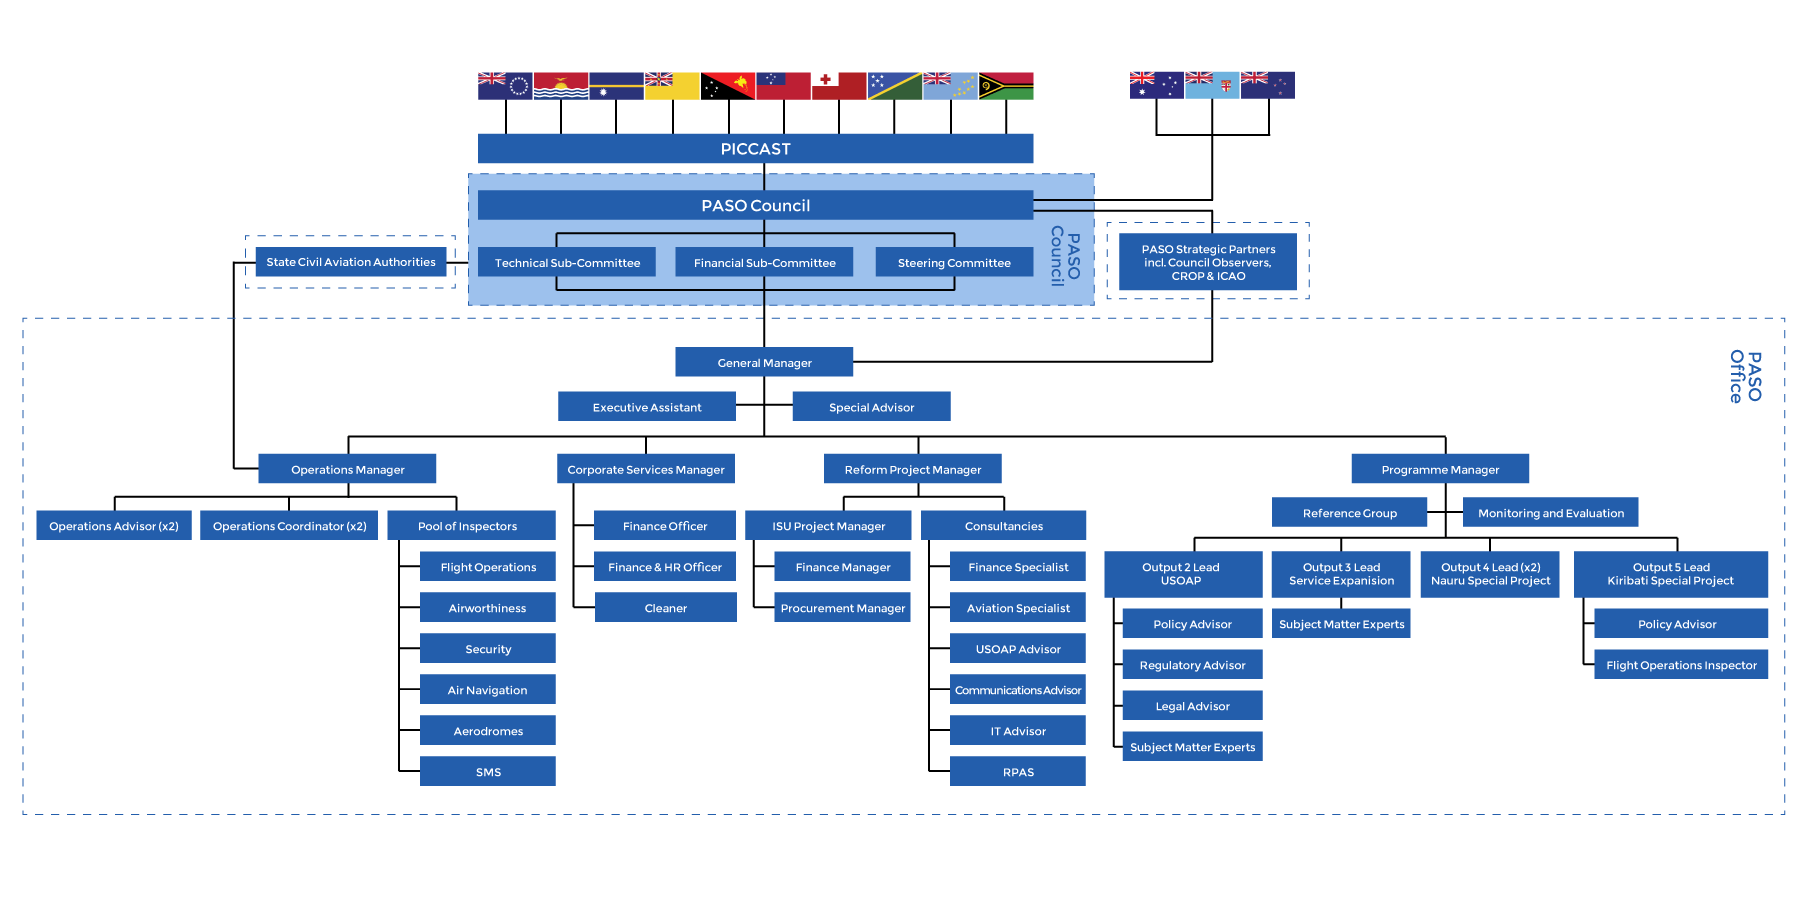 PASO Organisational Structure – highlighting PASO Council